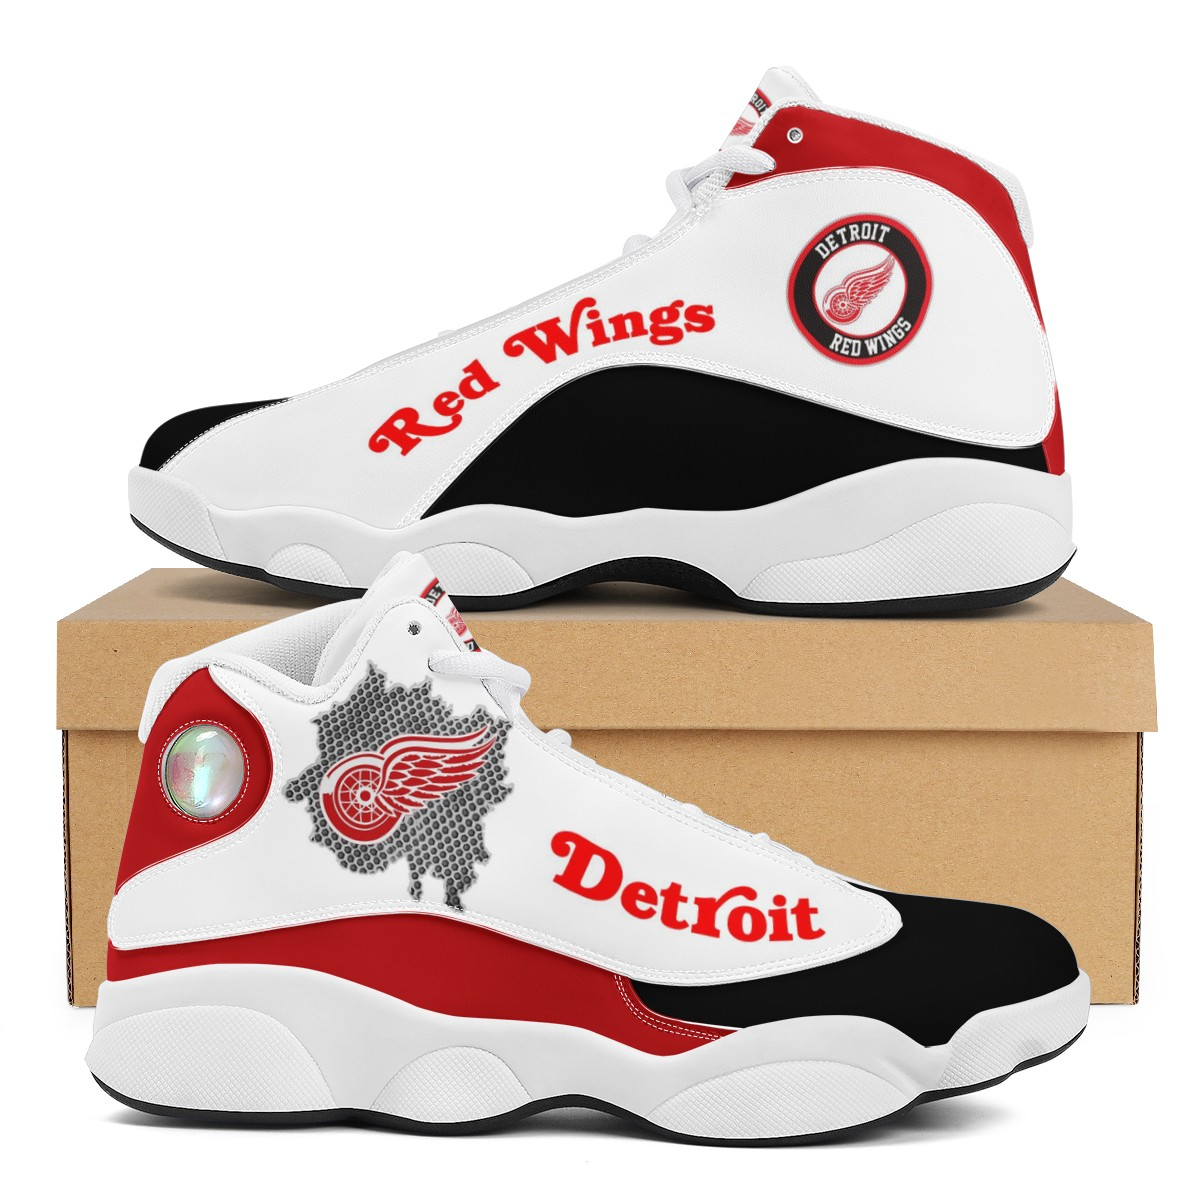 Men's Detroit Red Wings Limited Edition JD13 Sneakers 002